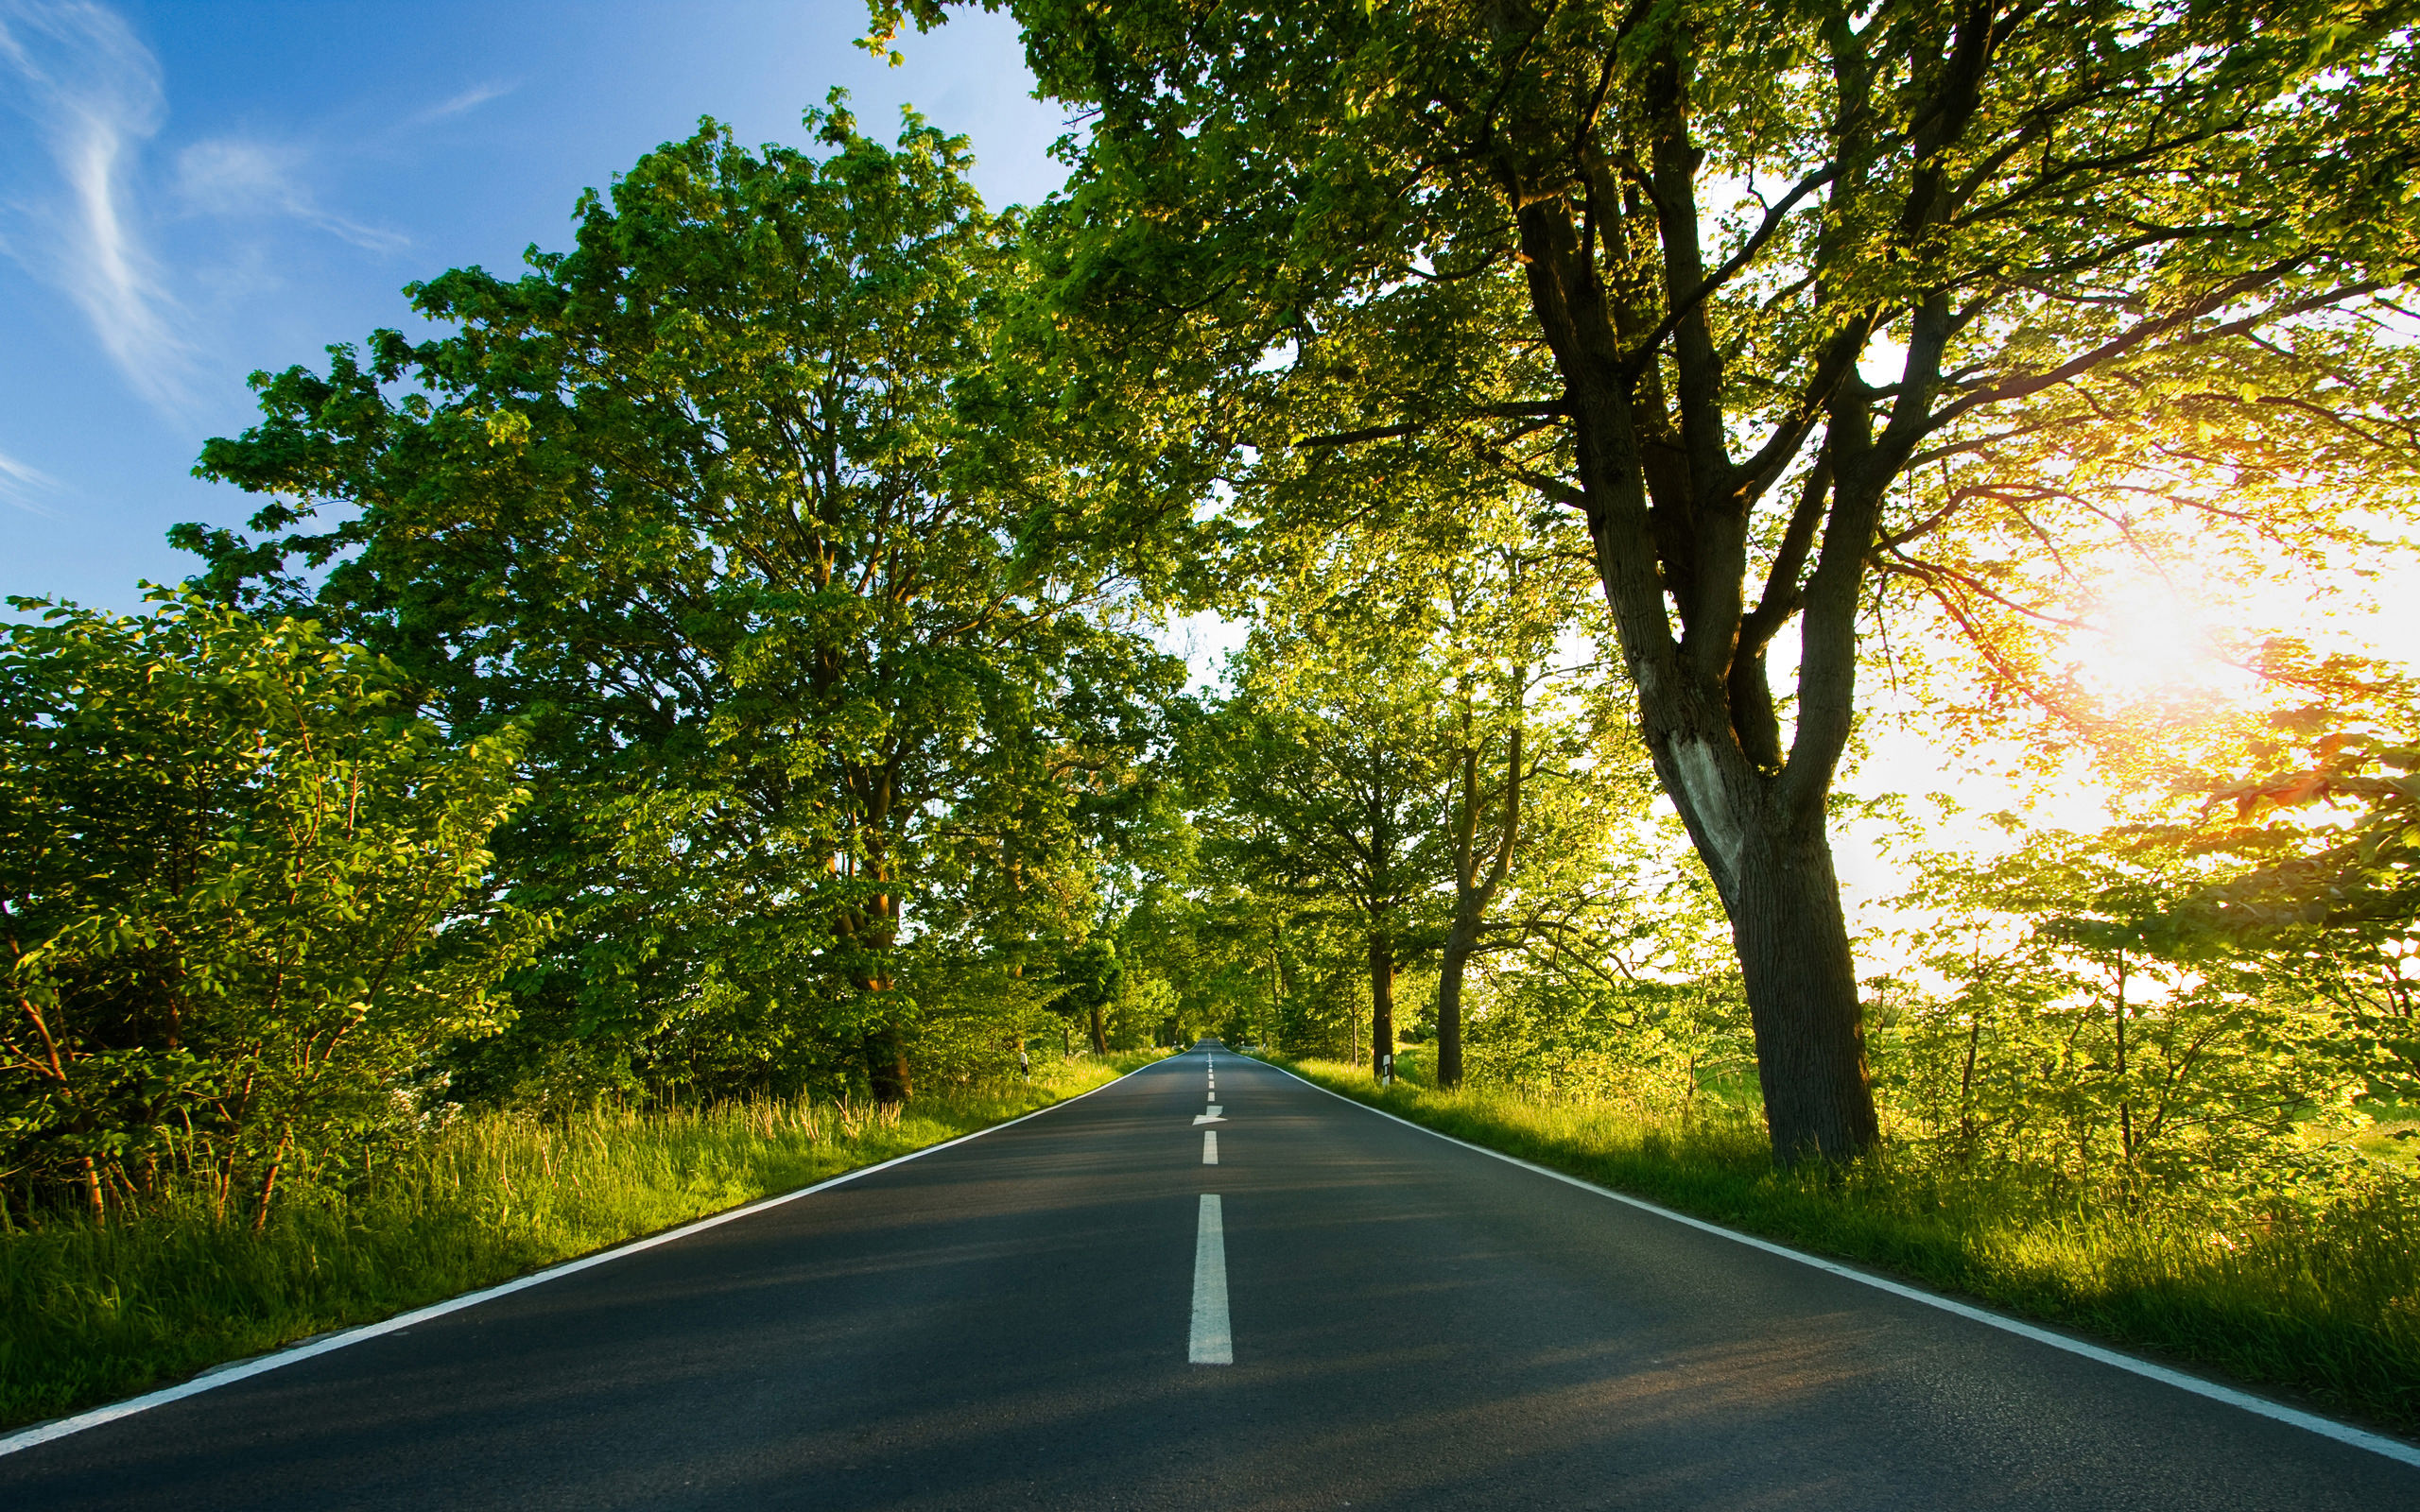 nature path background download